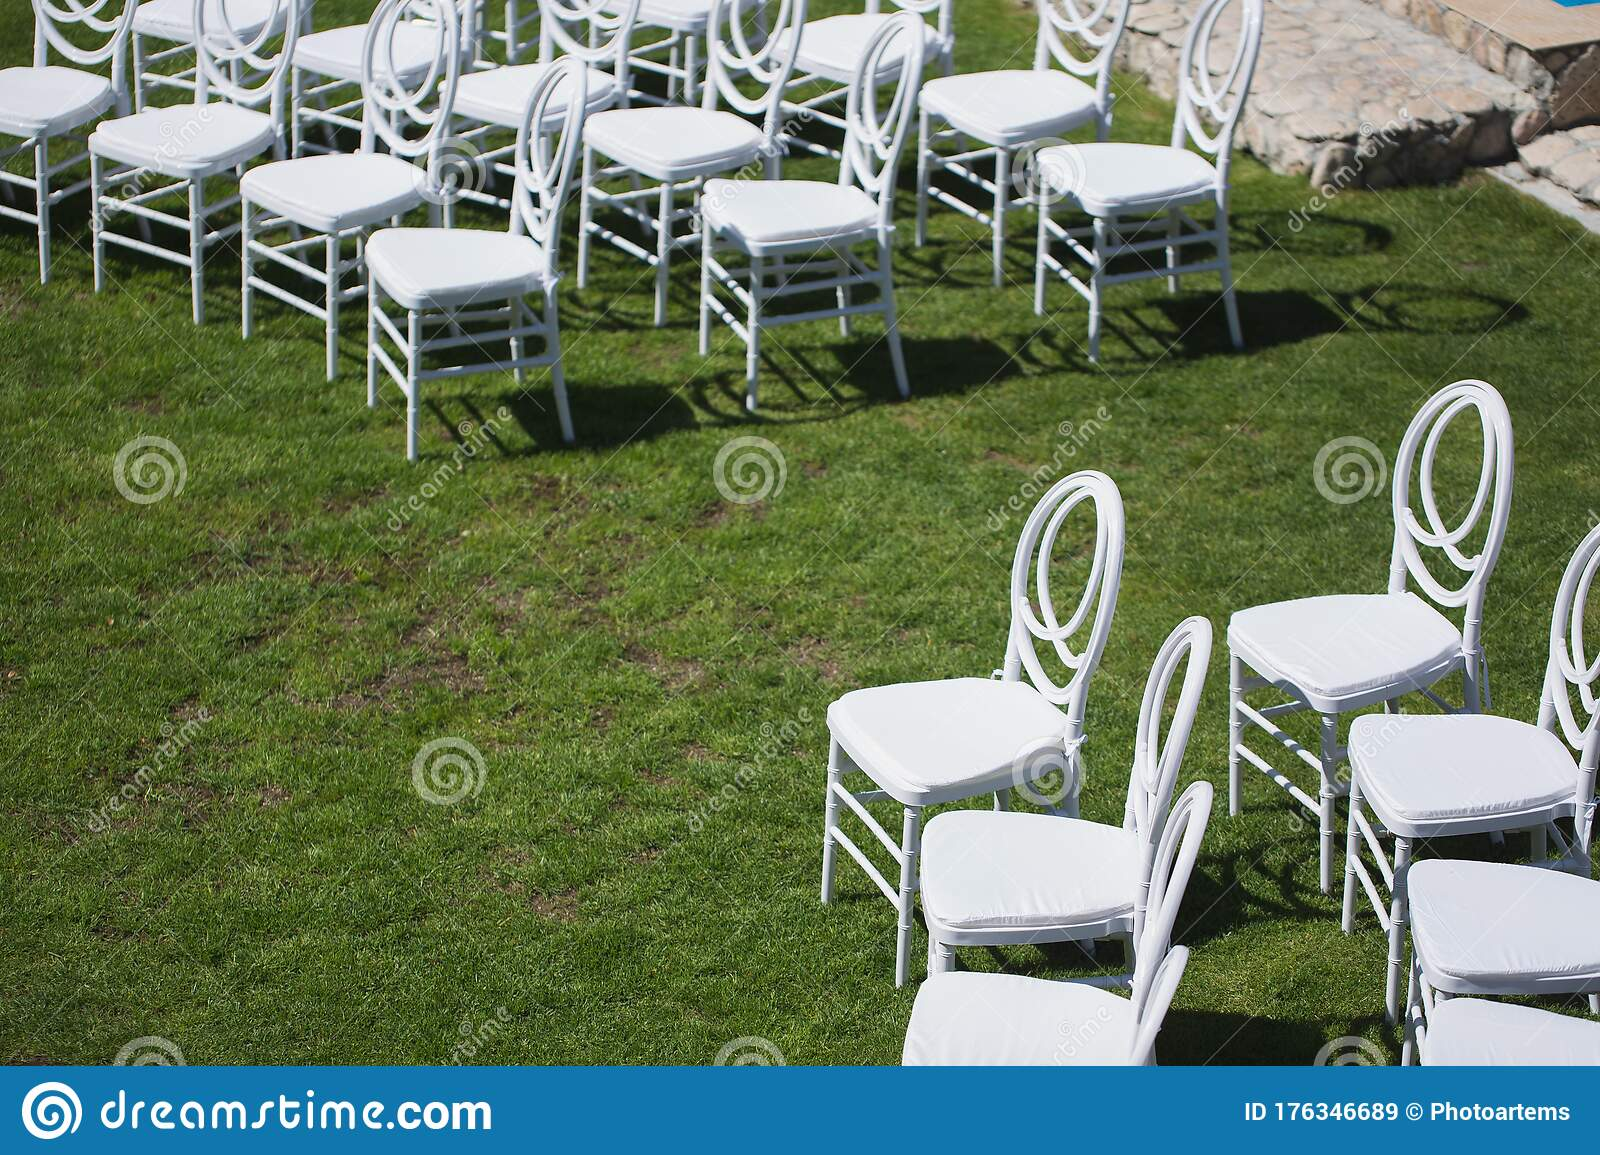 220 Green Folding Lawn Chair White Photos Free Royalty Free Stock Photos From Dreamstime